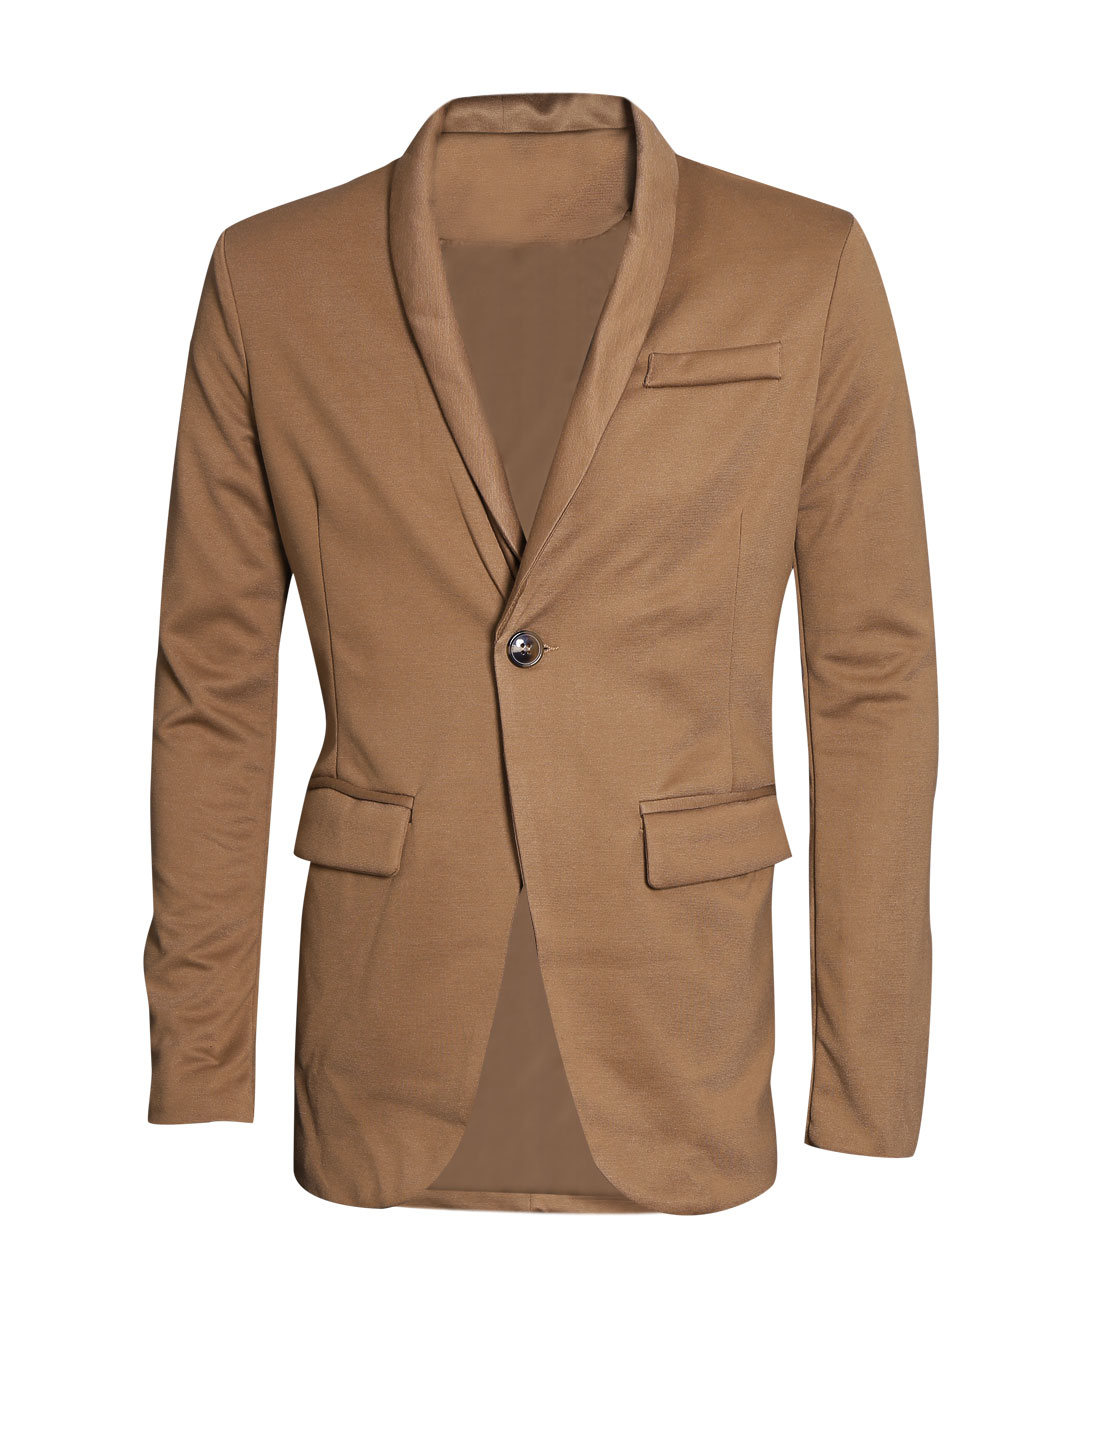 Men Shawl Collar Long Sleeve Two Flap Pockets Casual Blazer Camel M